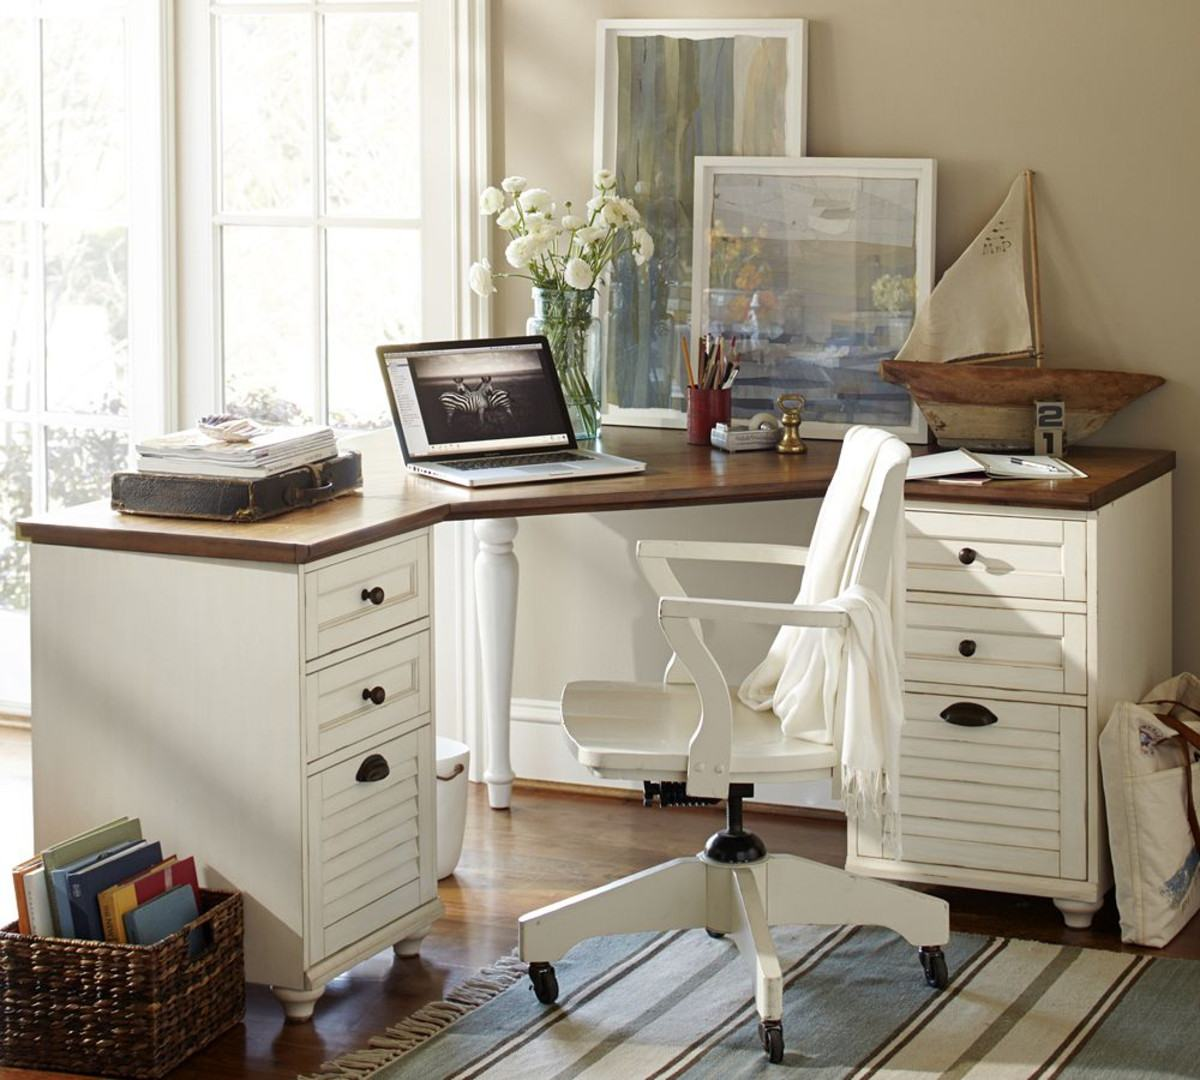 Classic setting of the home office in white with black fittings